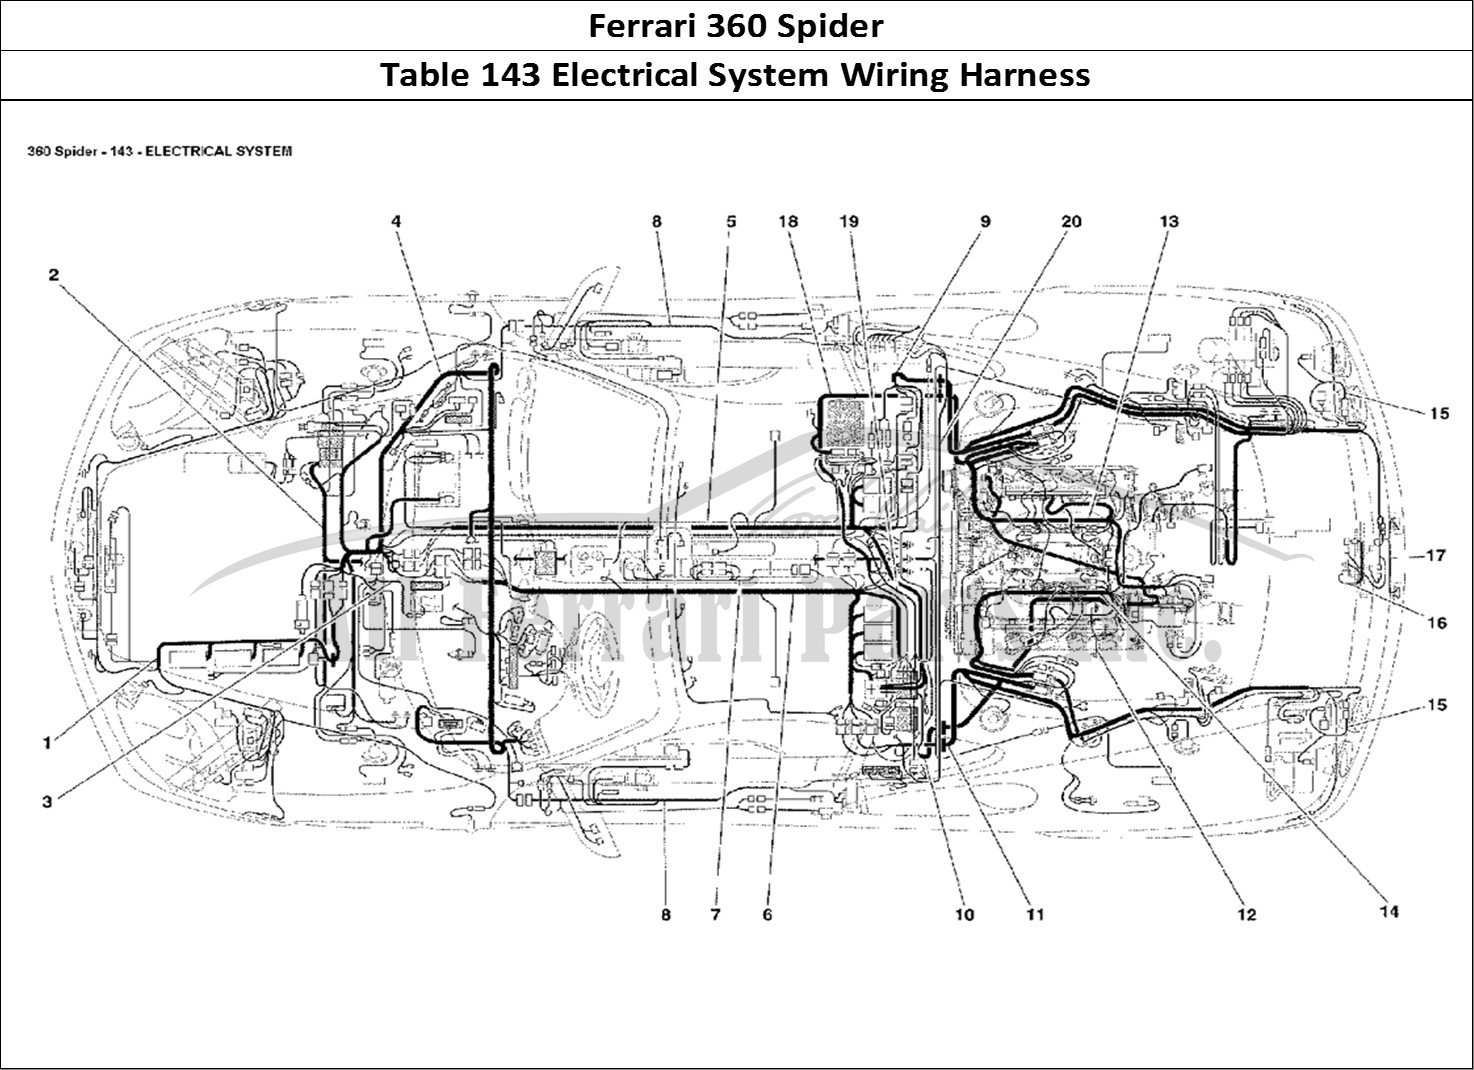 Ferrari 328 Engine Diagram. Ferrari. Auto Wiring Diagram